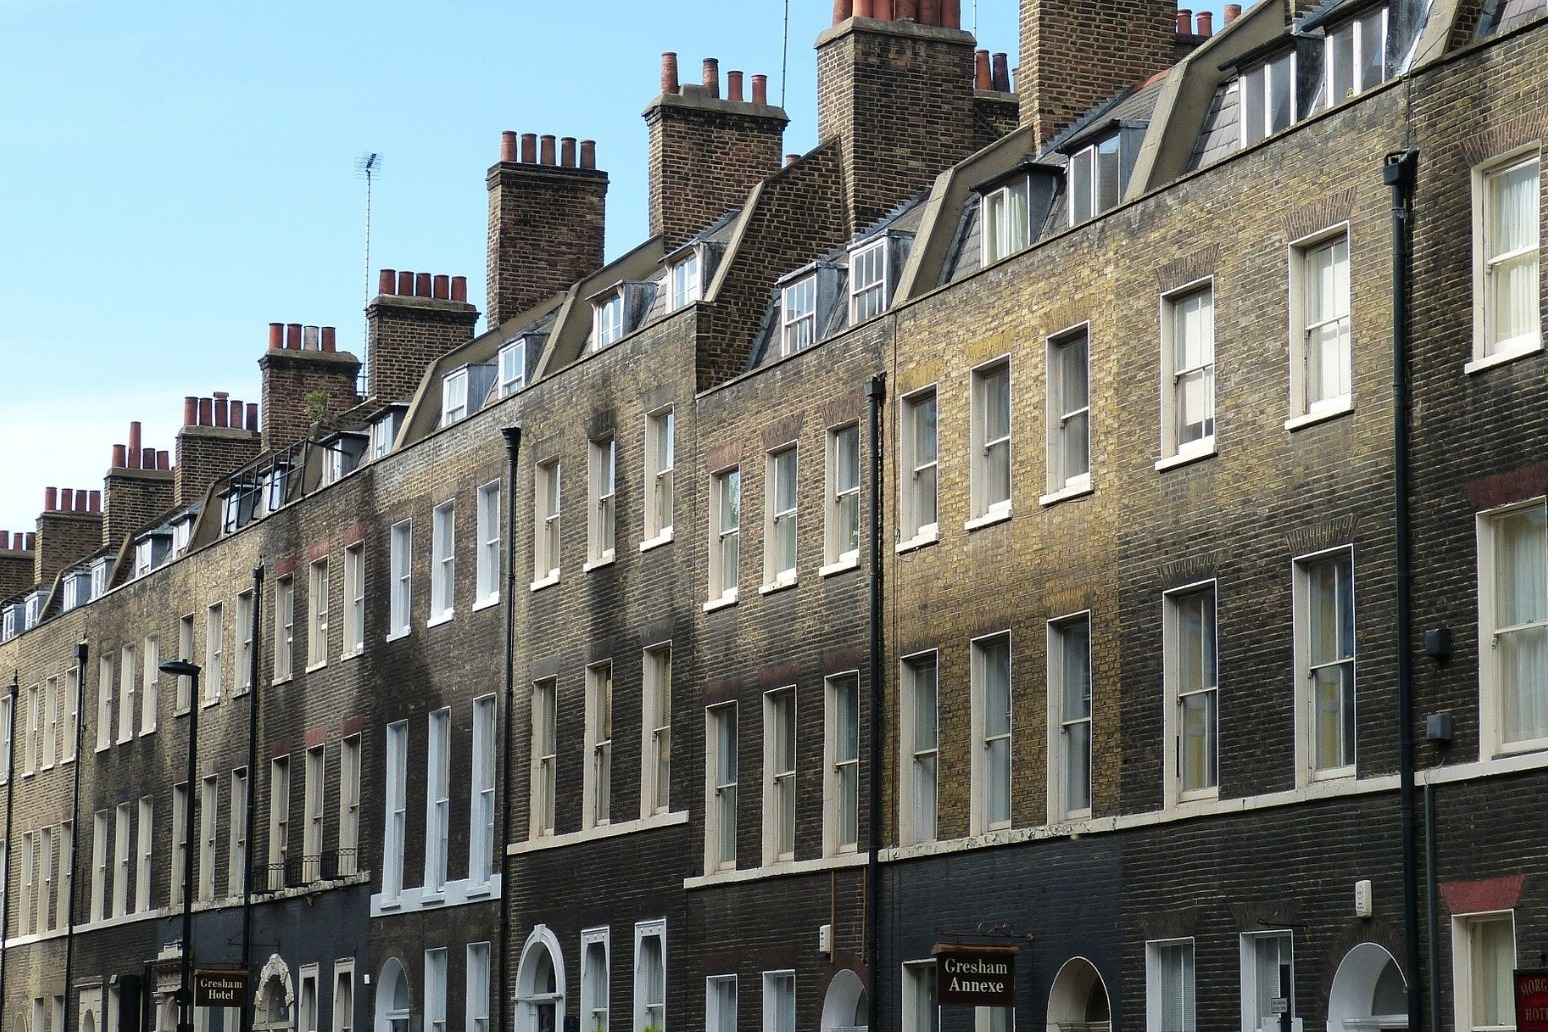 HOUSE-SELLERS\' ASKING PRICES WILL RISE BY 2% IN 2020, WEBSITE PREDICTS